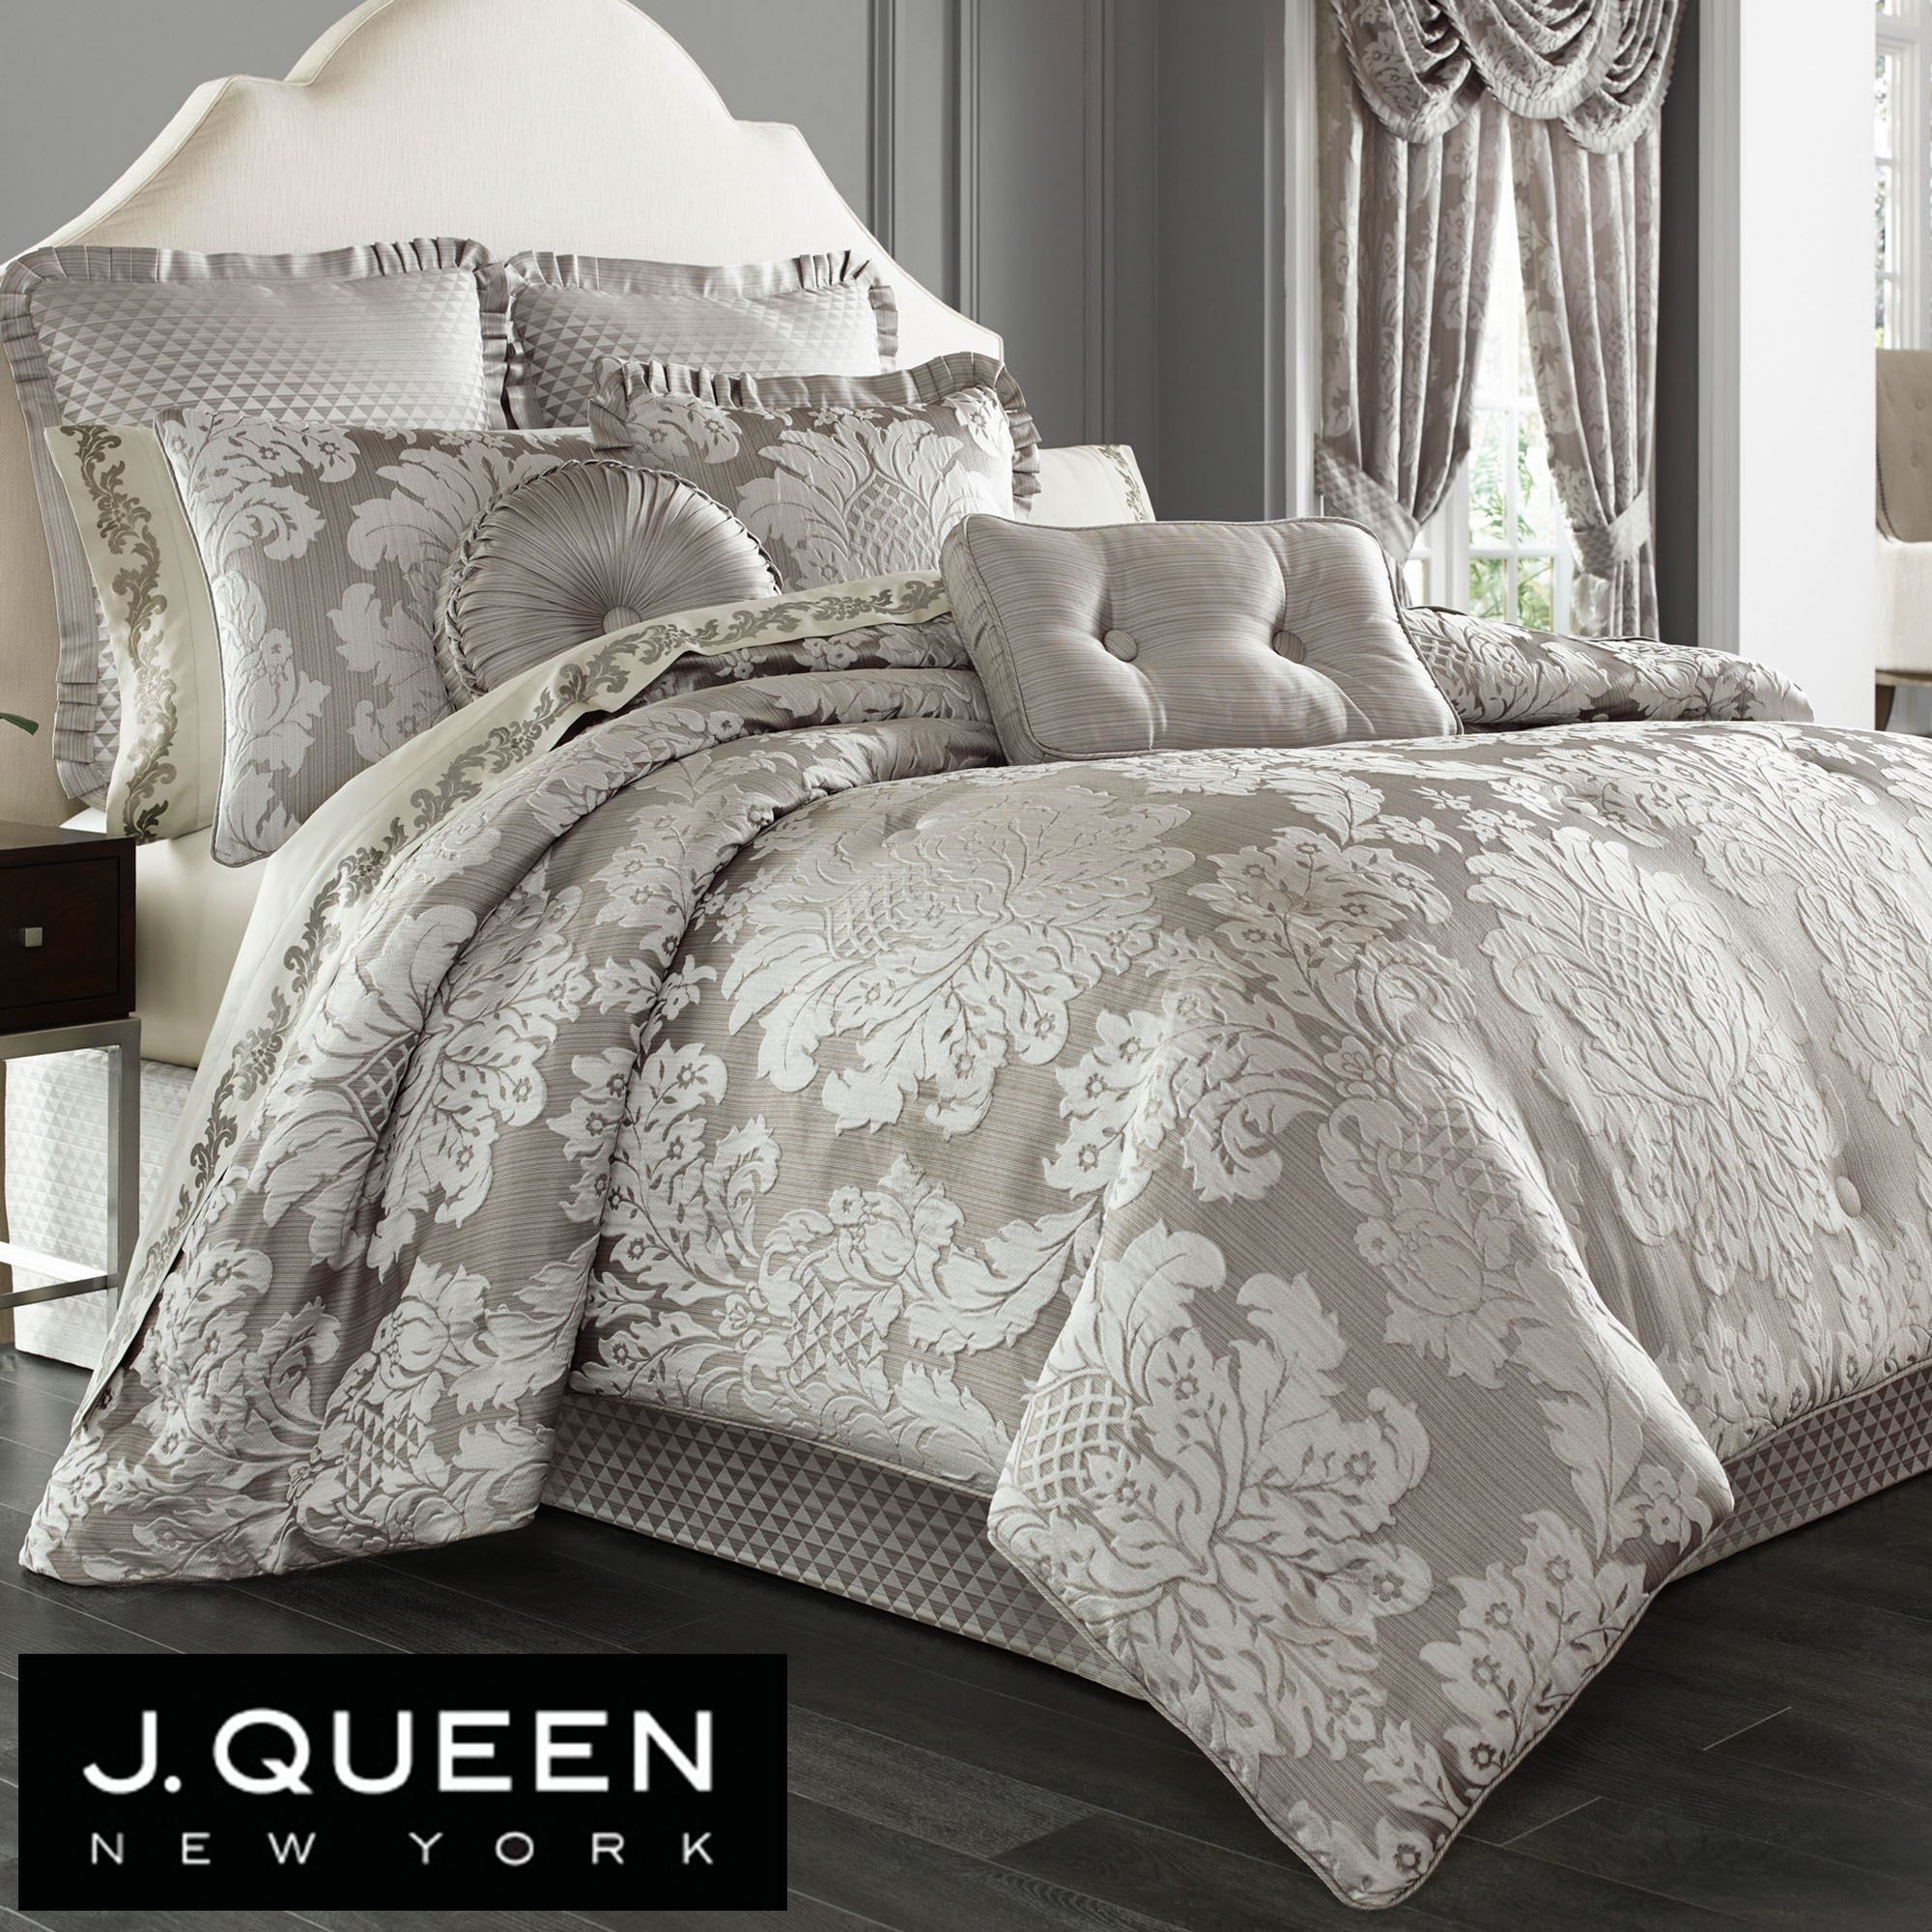 Chandelier Damask Comforter Bedding By J Queen New York